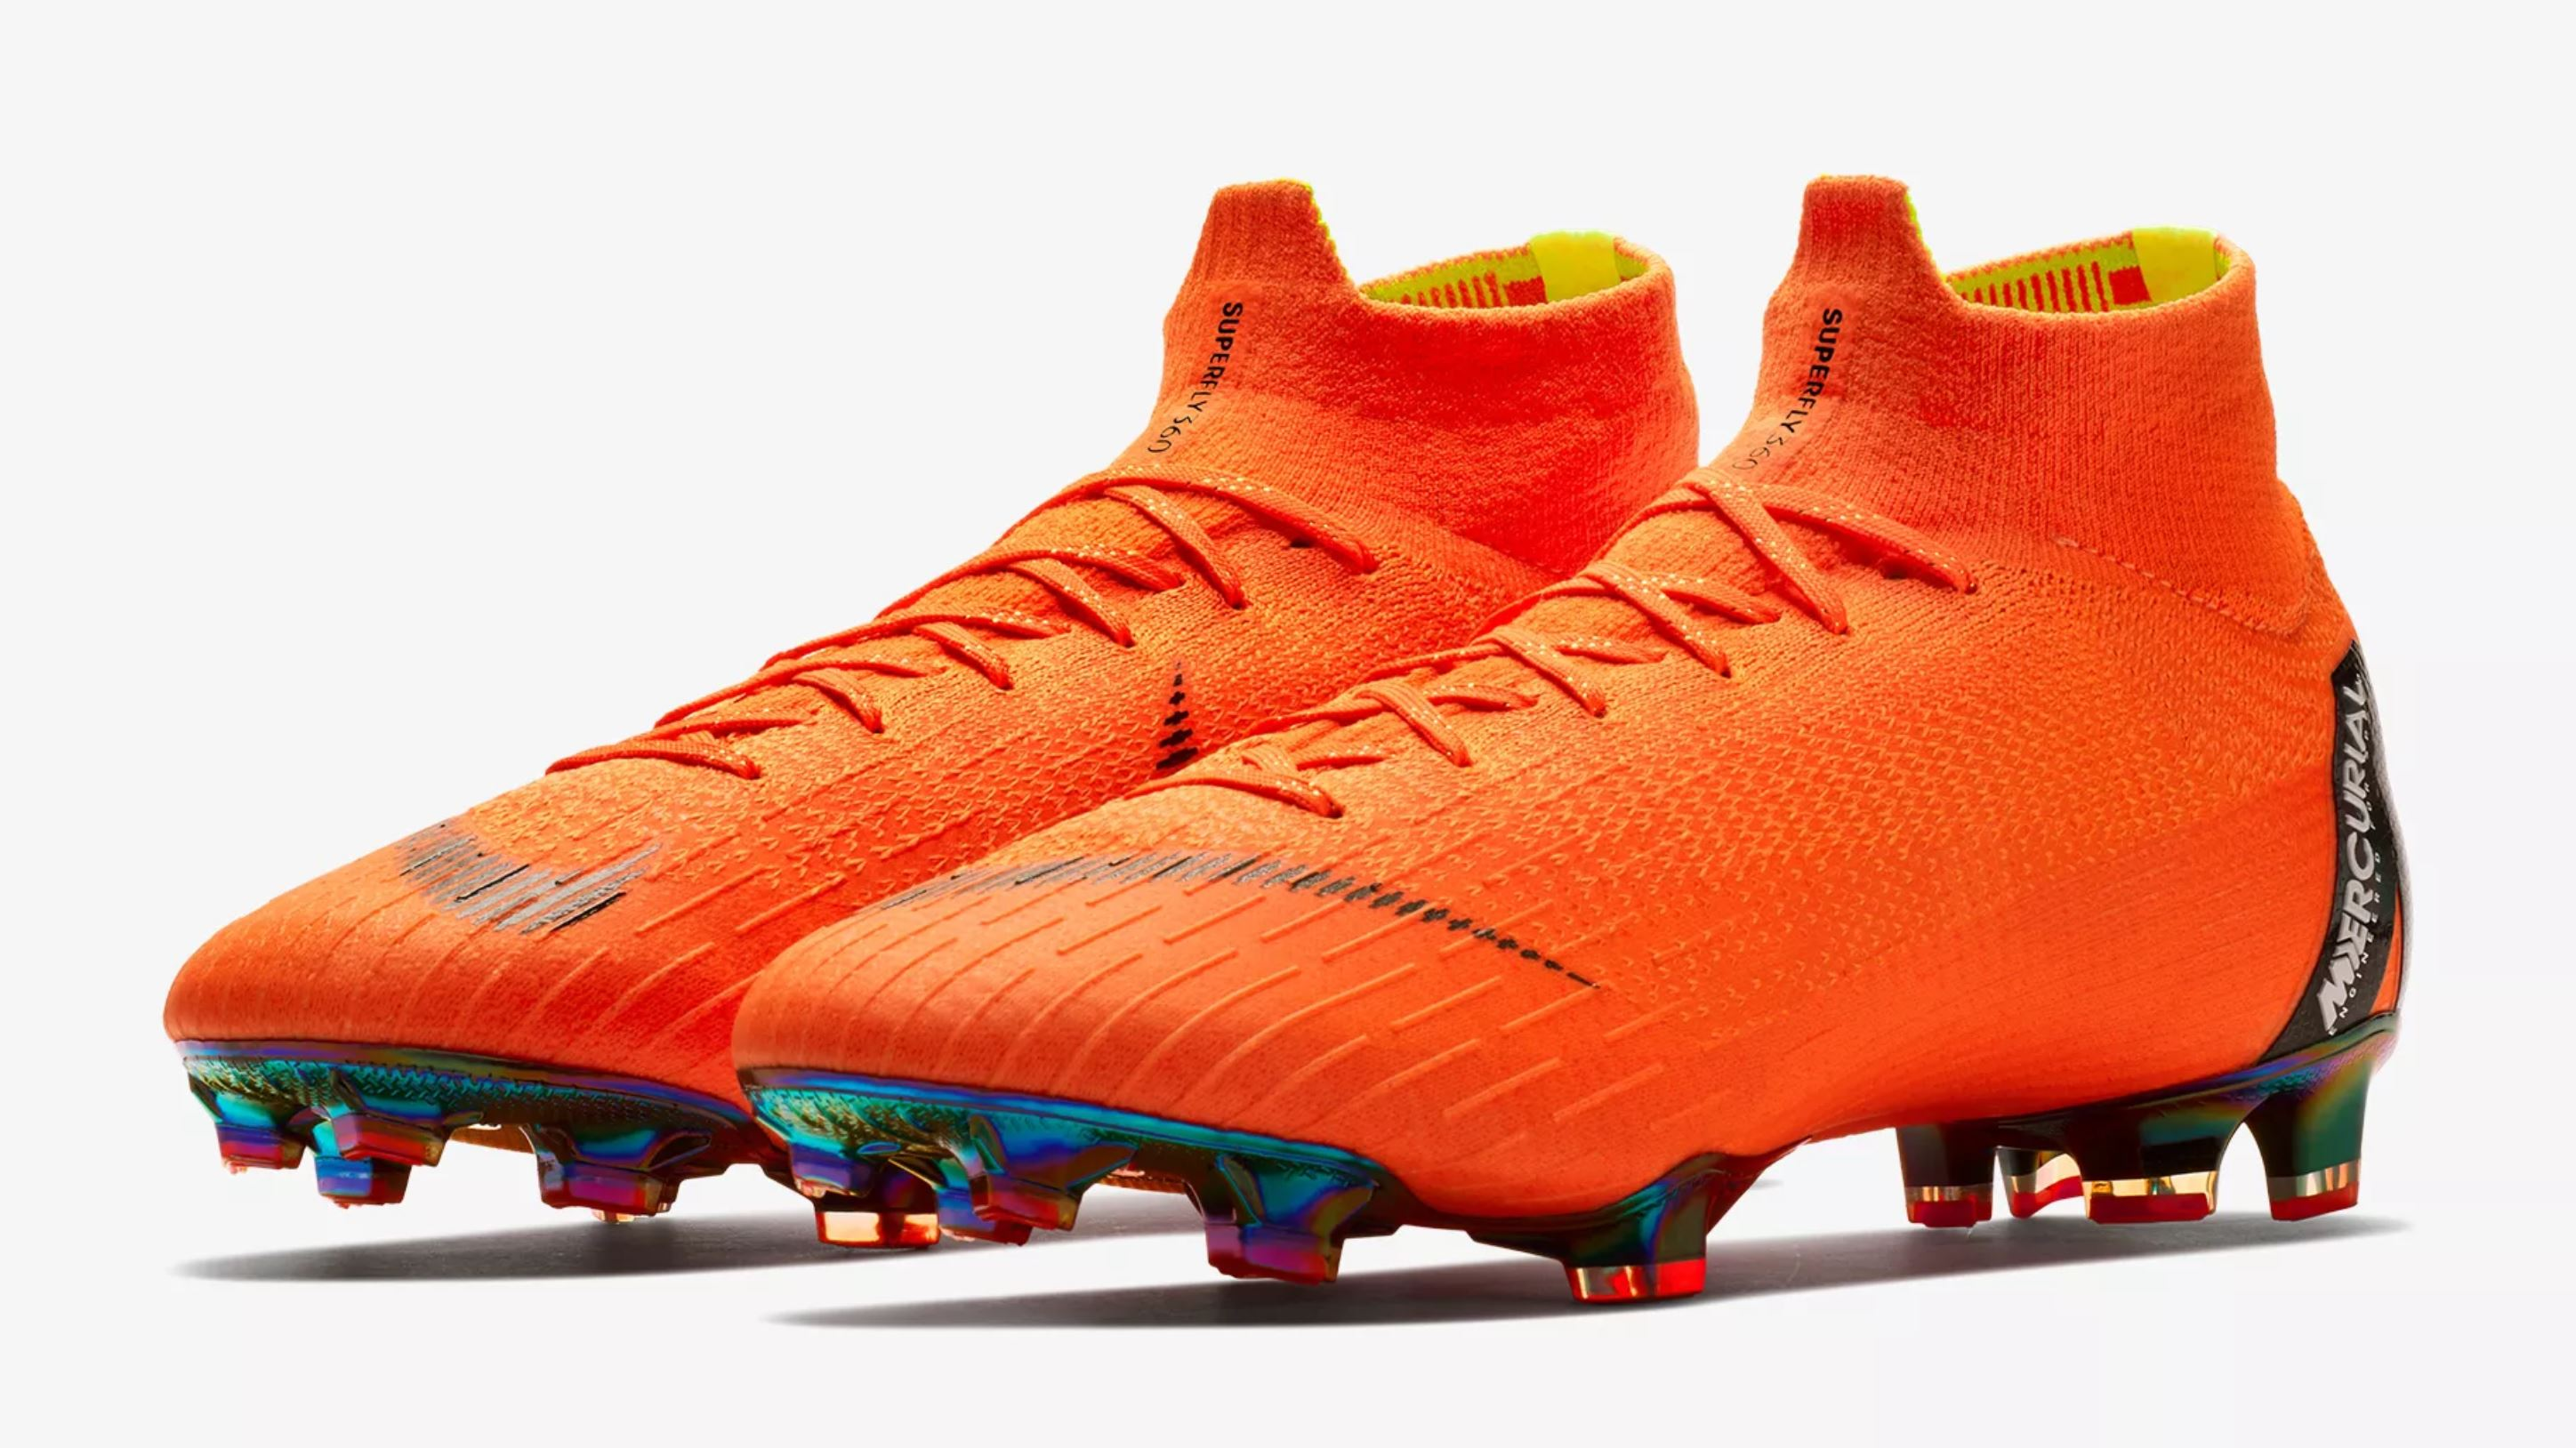 new styles lowest price super quality Nike Mercurial Superfly 360 Elite Released | Soccer Cleats 101